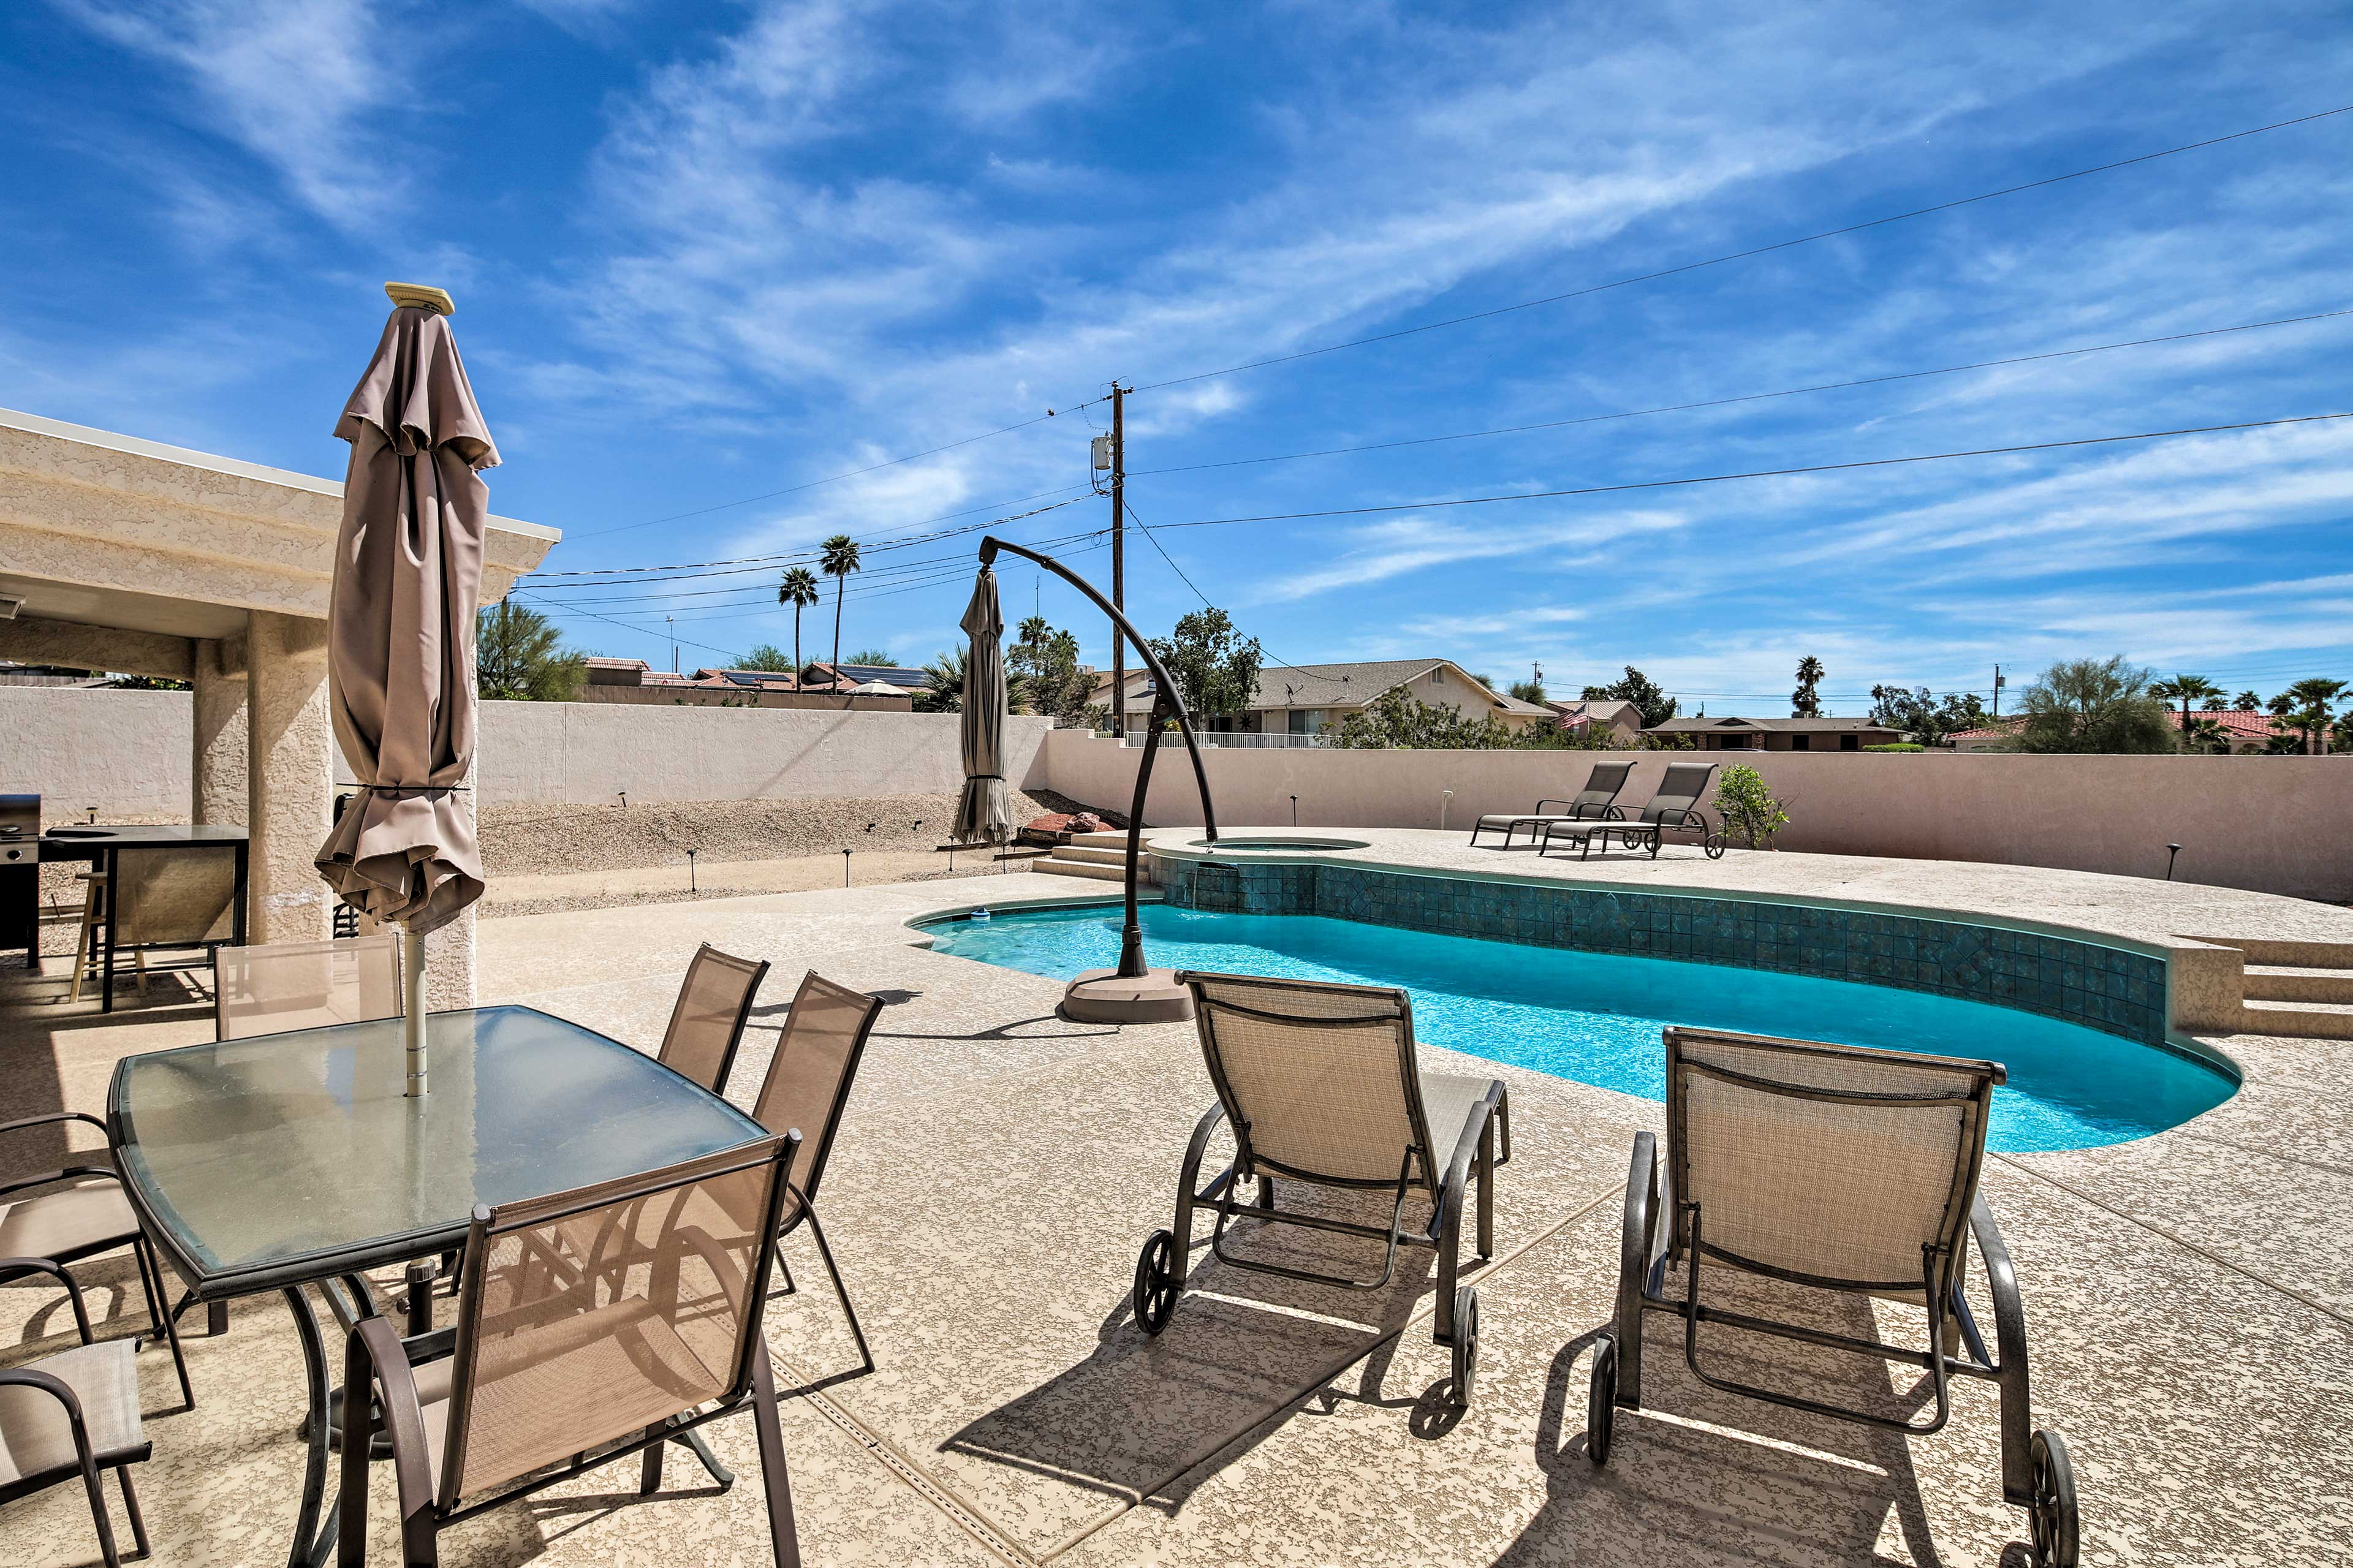 Catch some sun on patio lounge chairs, then jump in the pool to cool off!